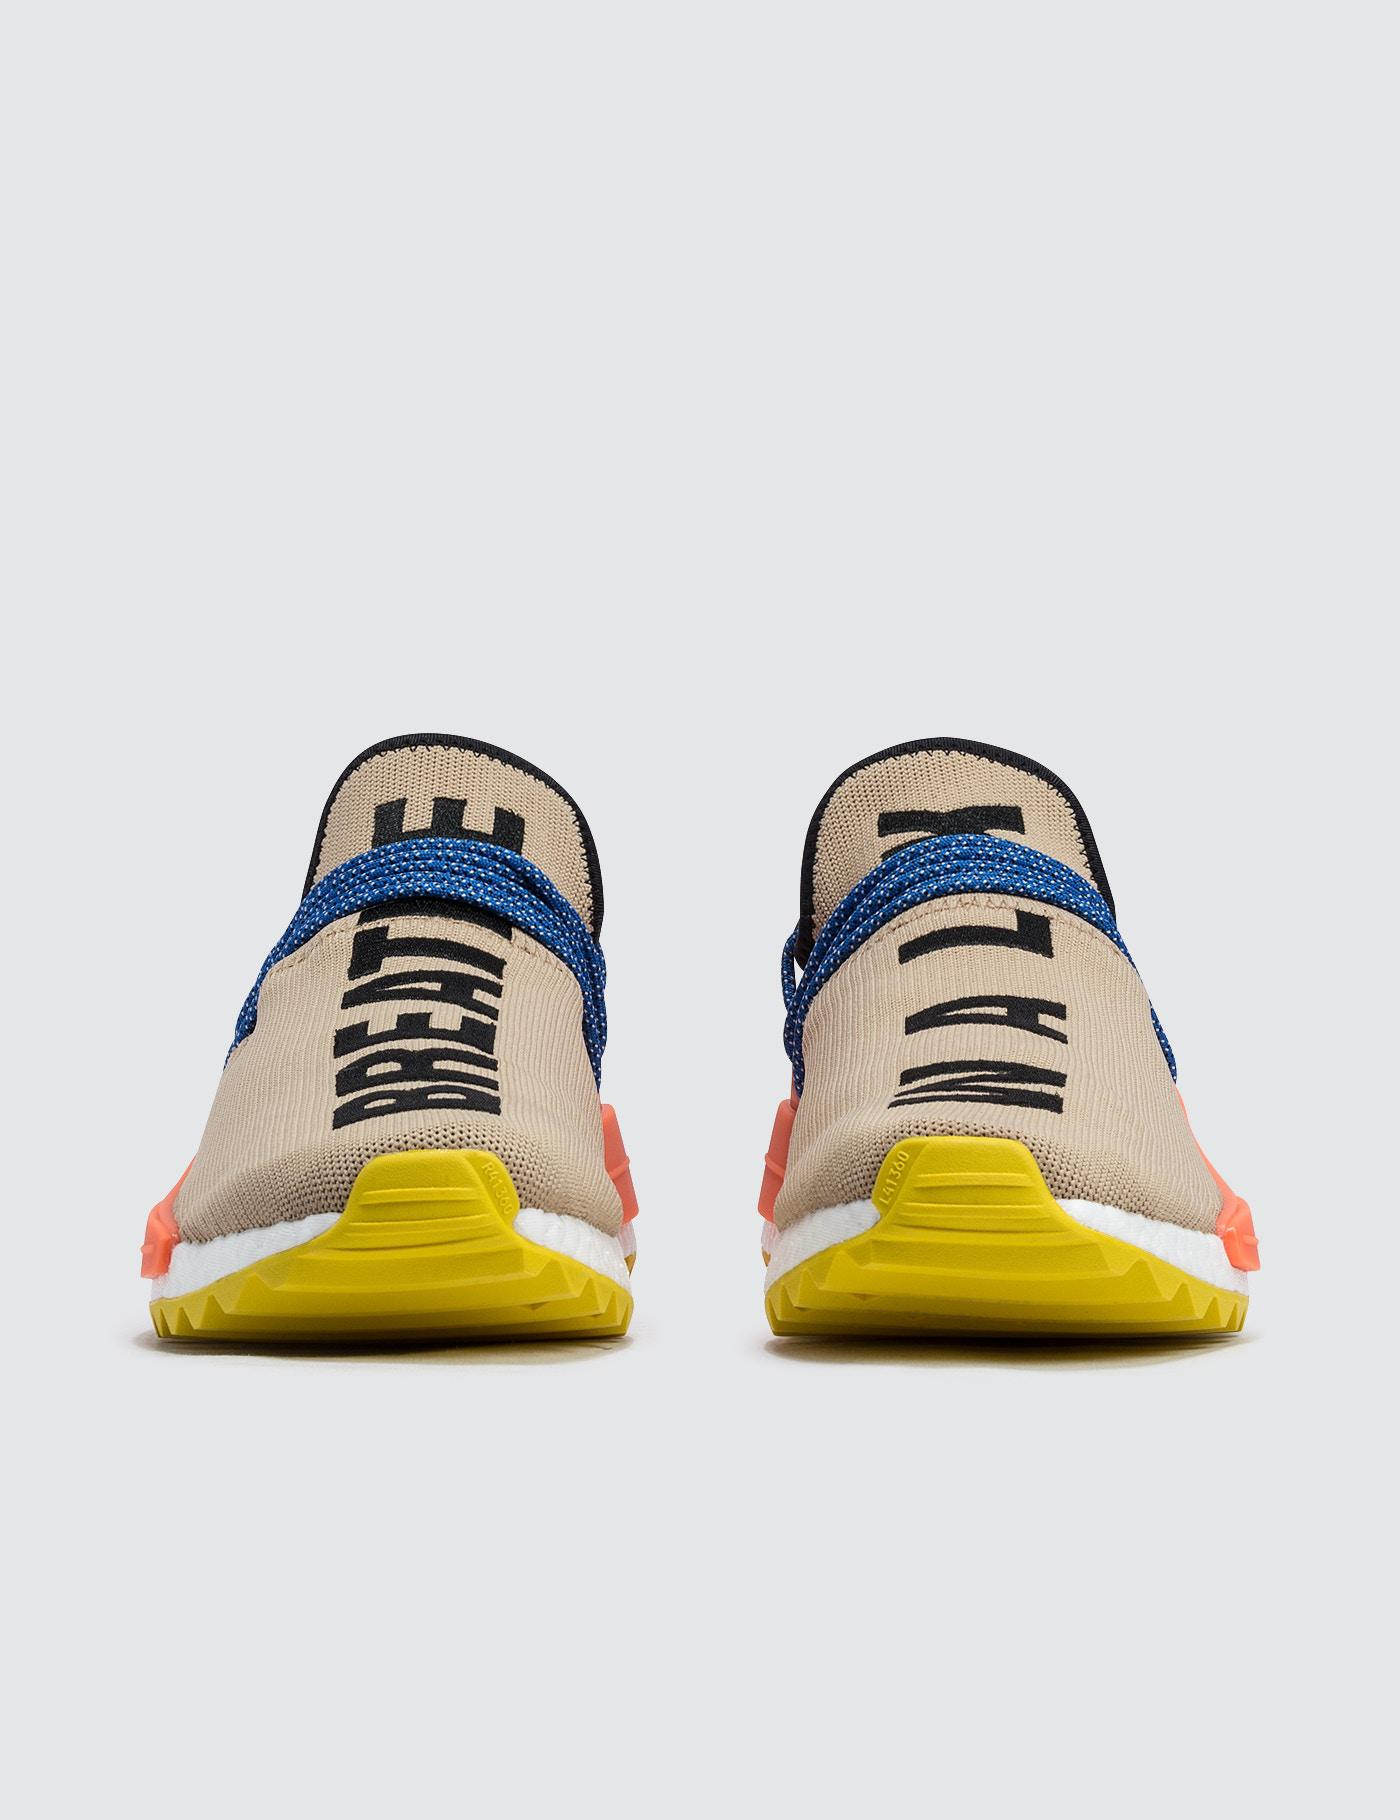 95bc00443 Lyst - adidas Originals Pharrell Williams Hu Hiking Human Race Nmd ...